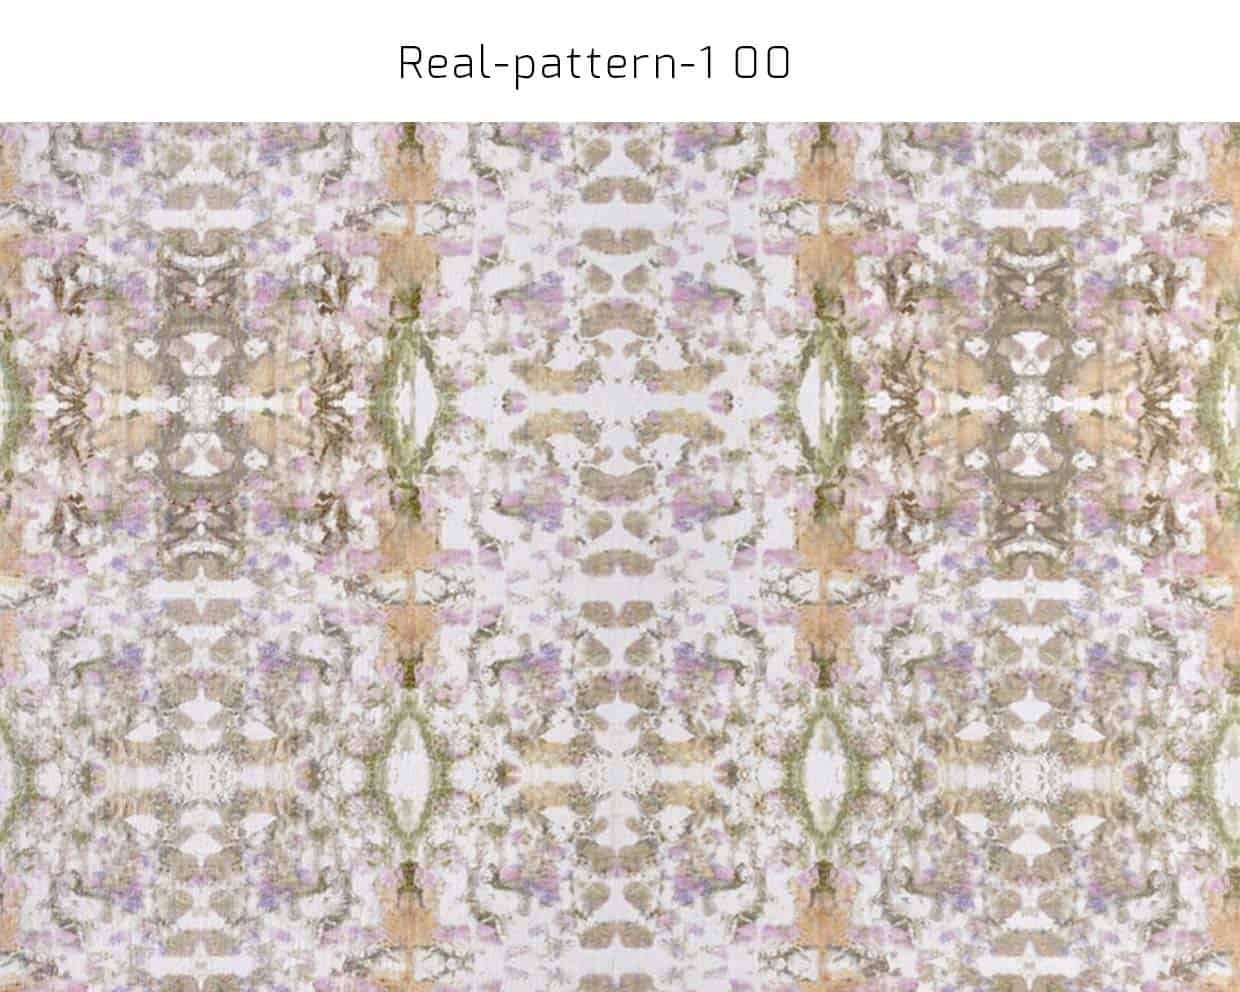 Real pattern 1